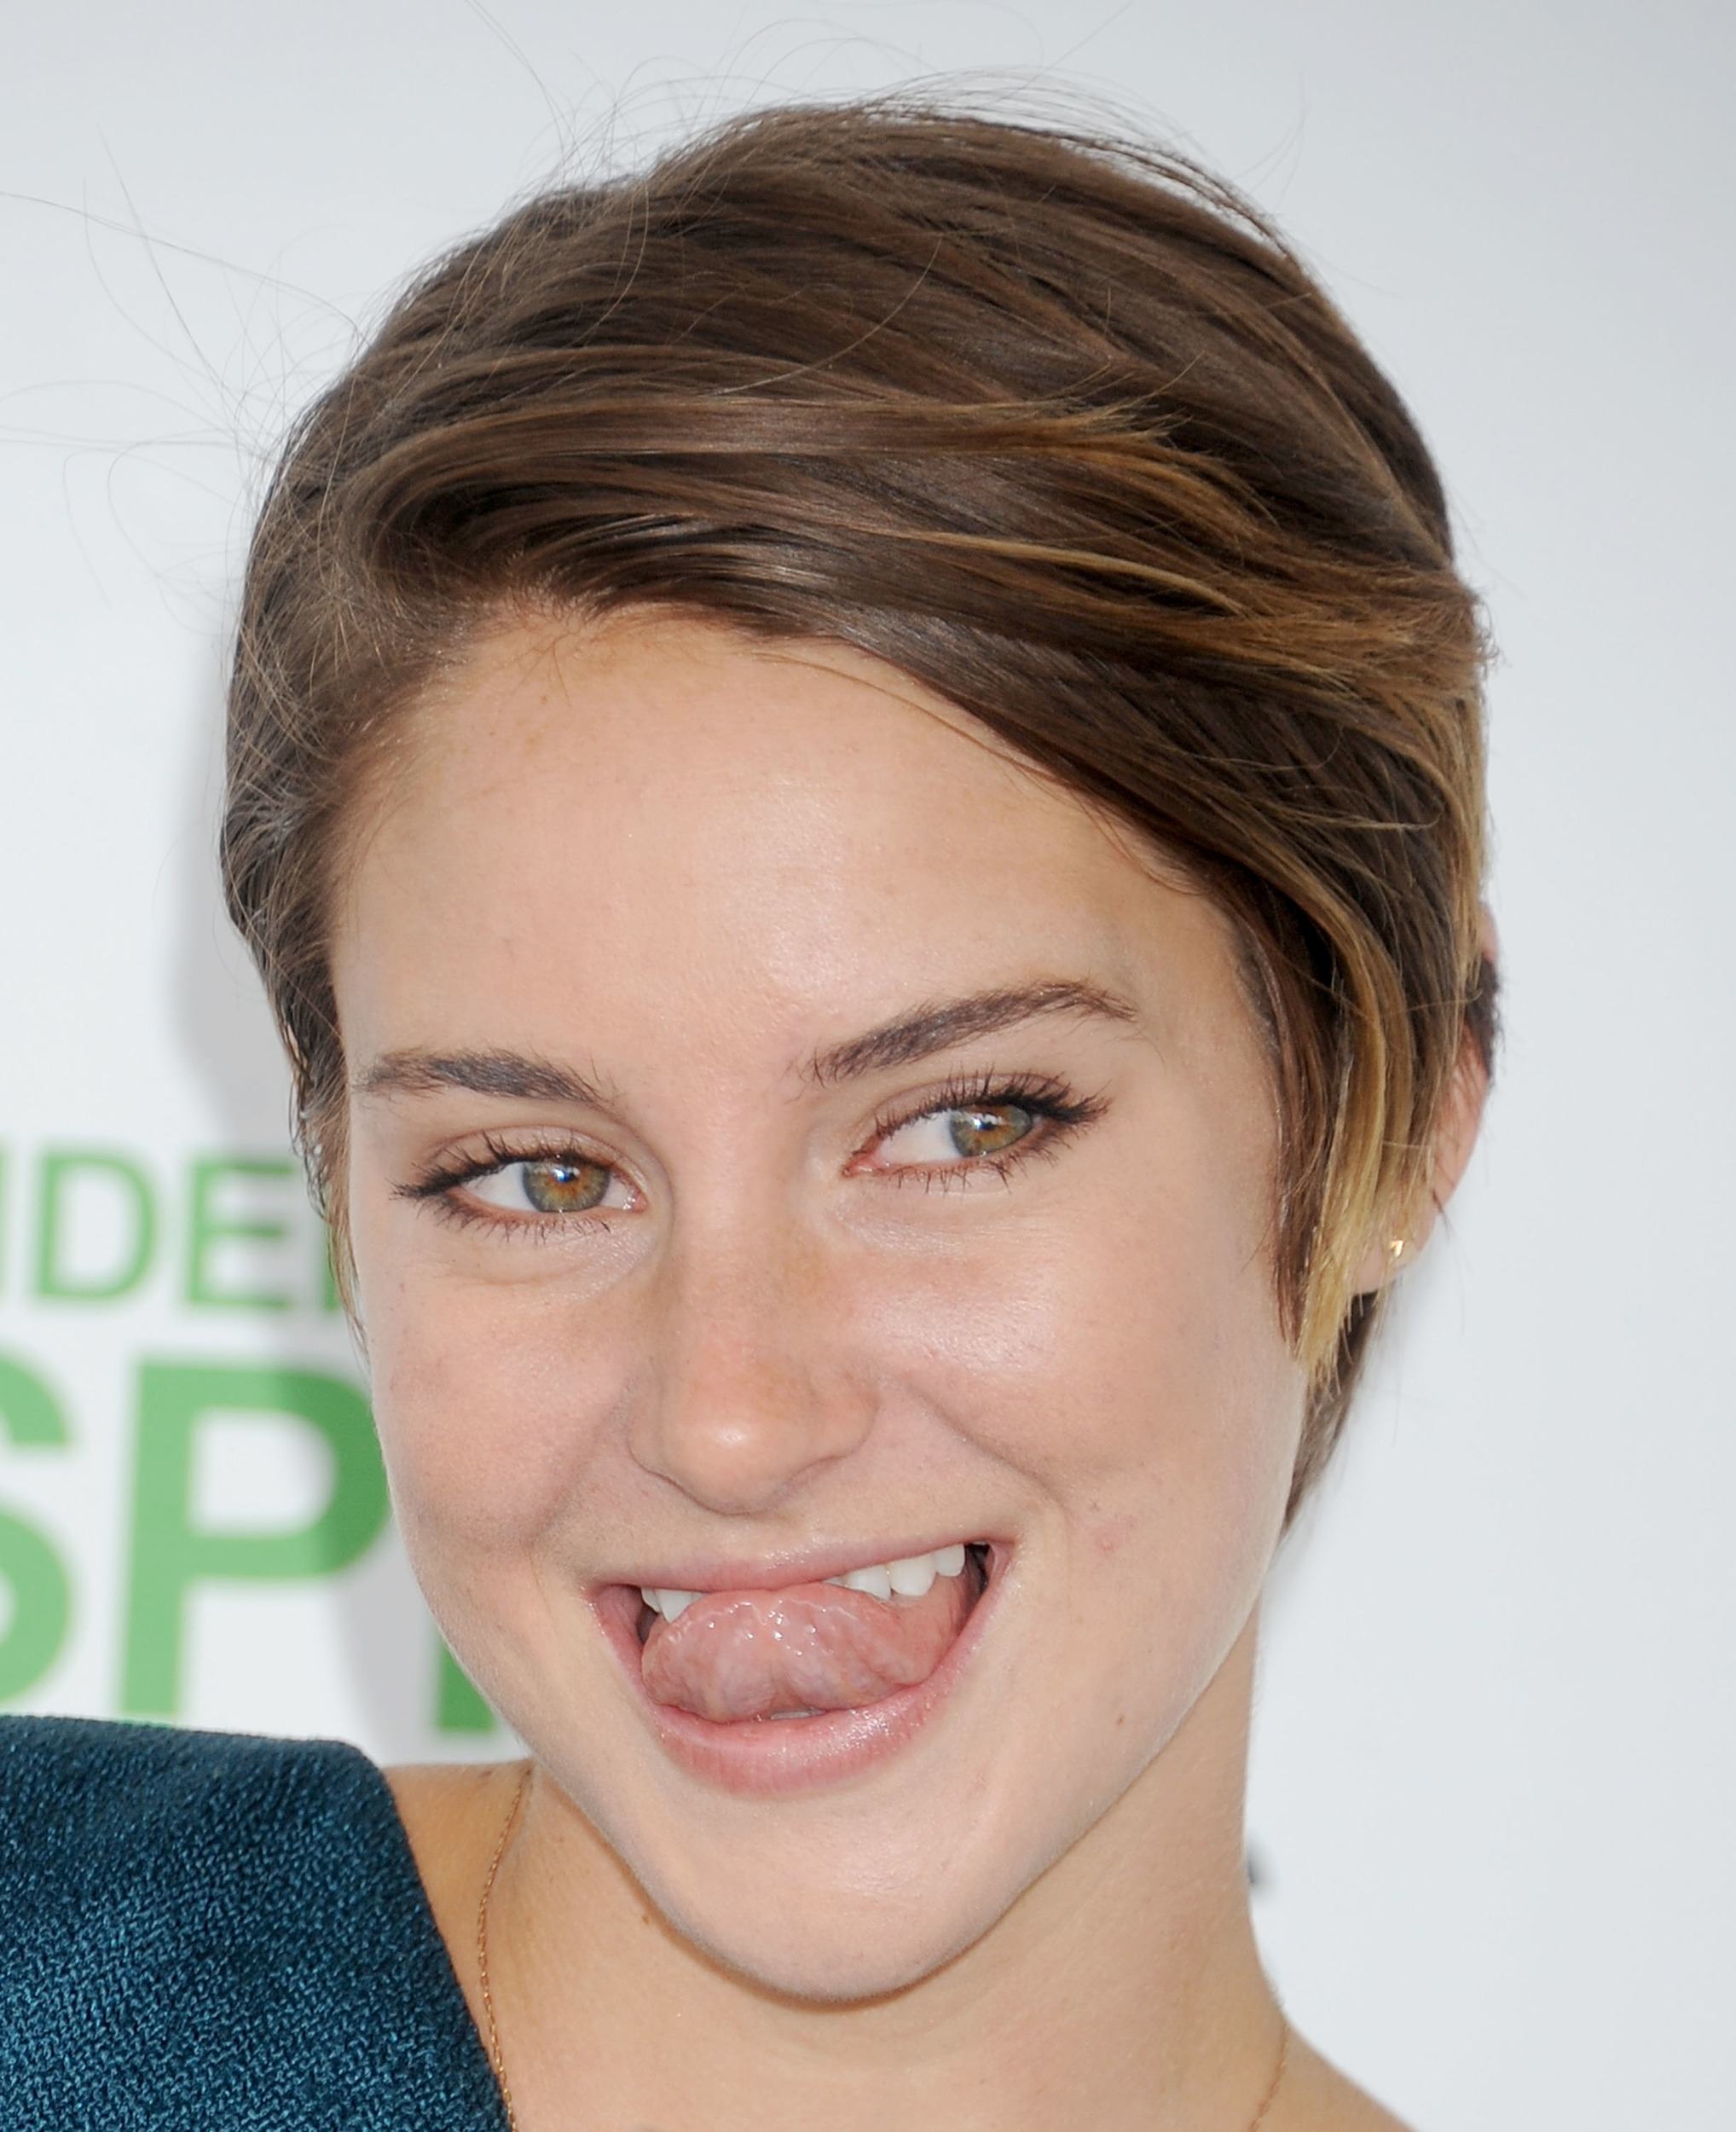 Who is theo james dating shailene woodley 7